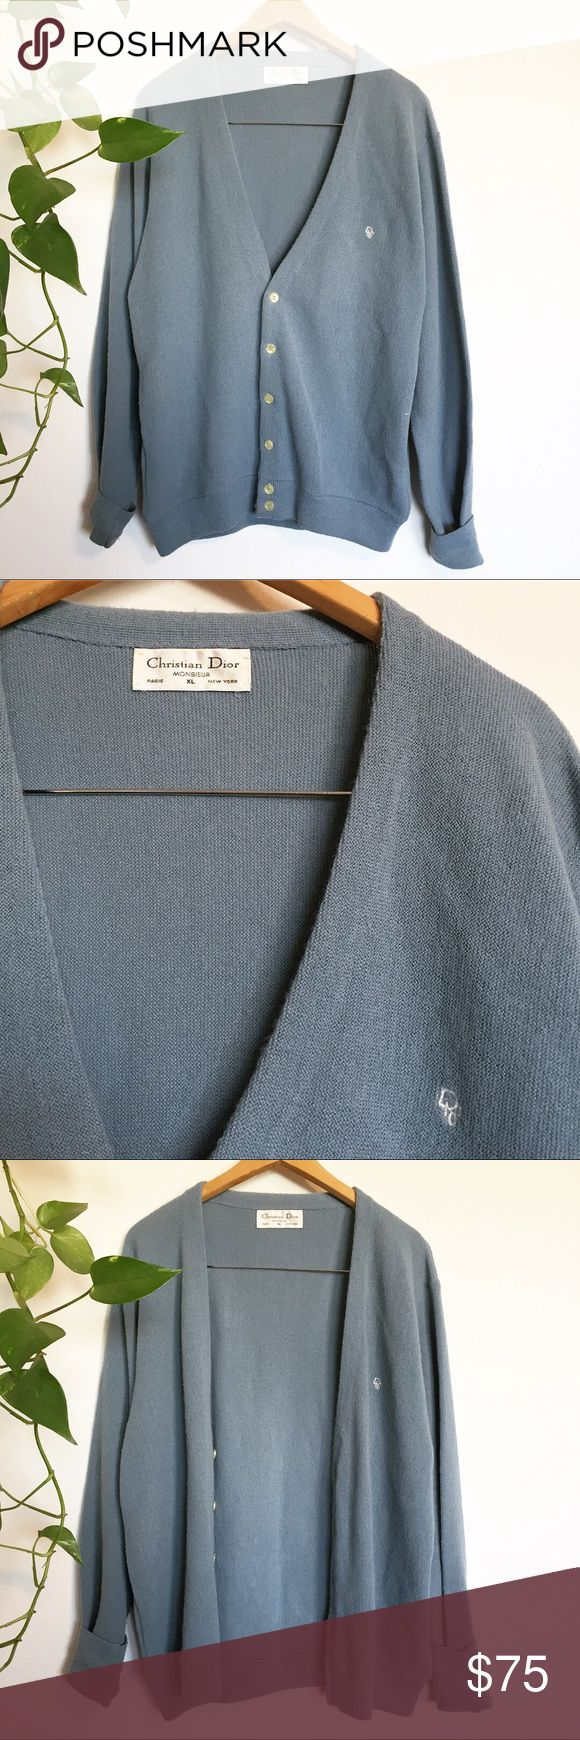 """Vintage Christian Dior grandpa cardigan sweater Vintage Christian Dior grandpa cardigan sweater. Has Dior embroidery on left shoulder. It's made from that 70s knit orlon acrylic that looks like wool but isn't itchy. Size XL, 24"""" pit to pit and 28"""" long. Cute oversized slouchy hip look. Christian Dior Sweaters Cardigan"""